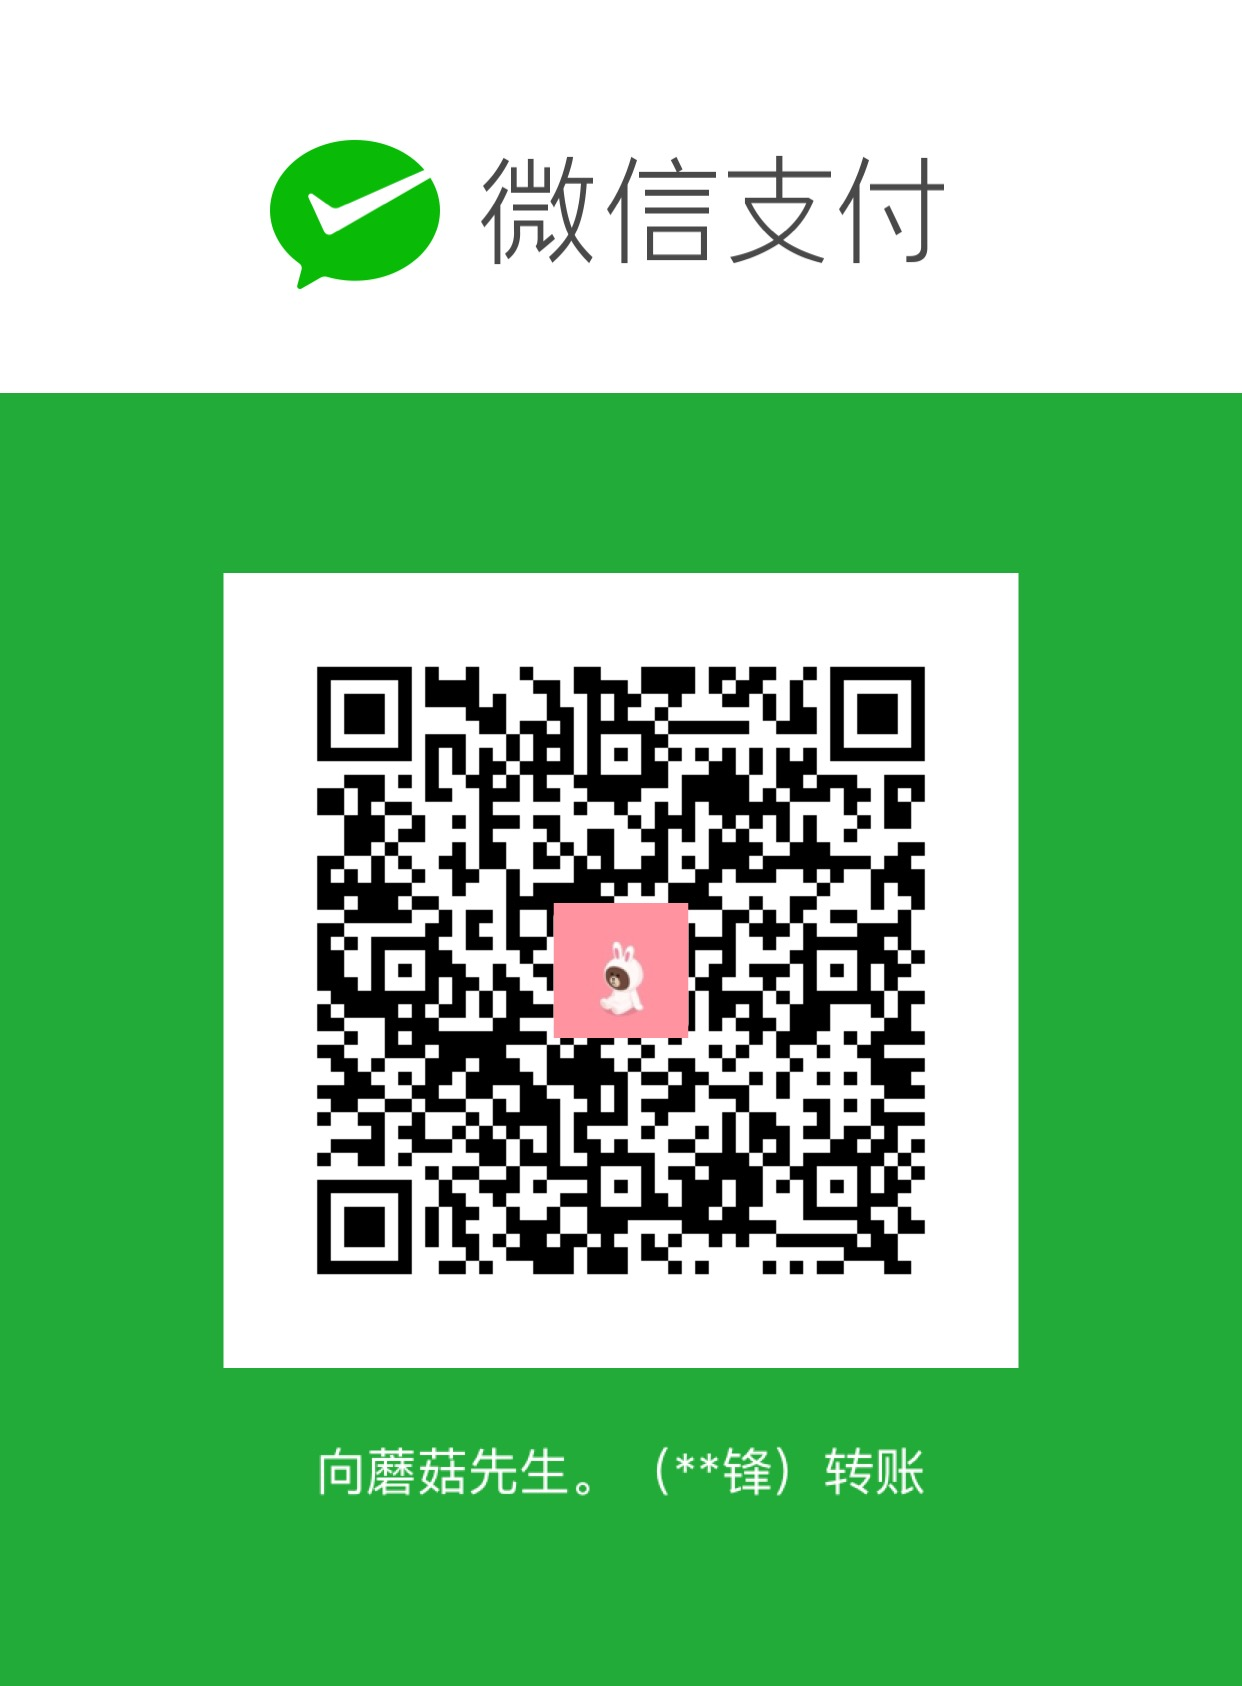 xuetf WeChat Pay